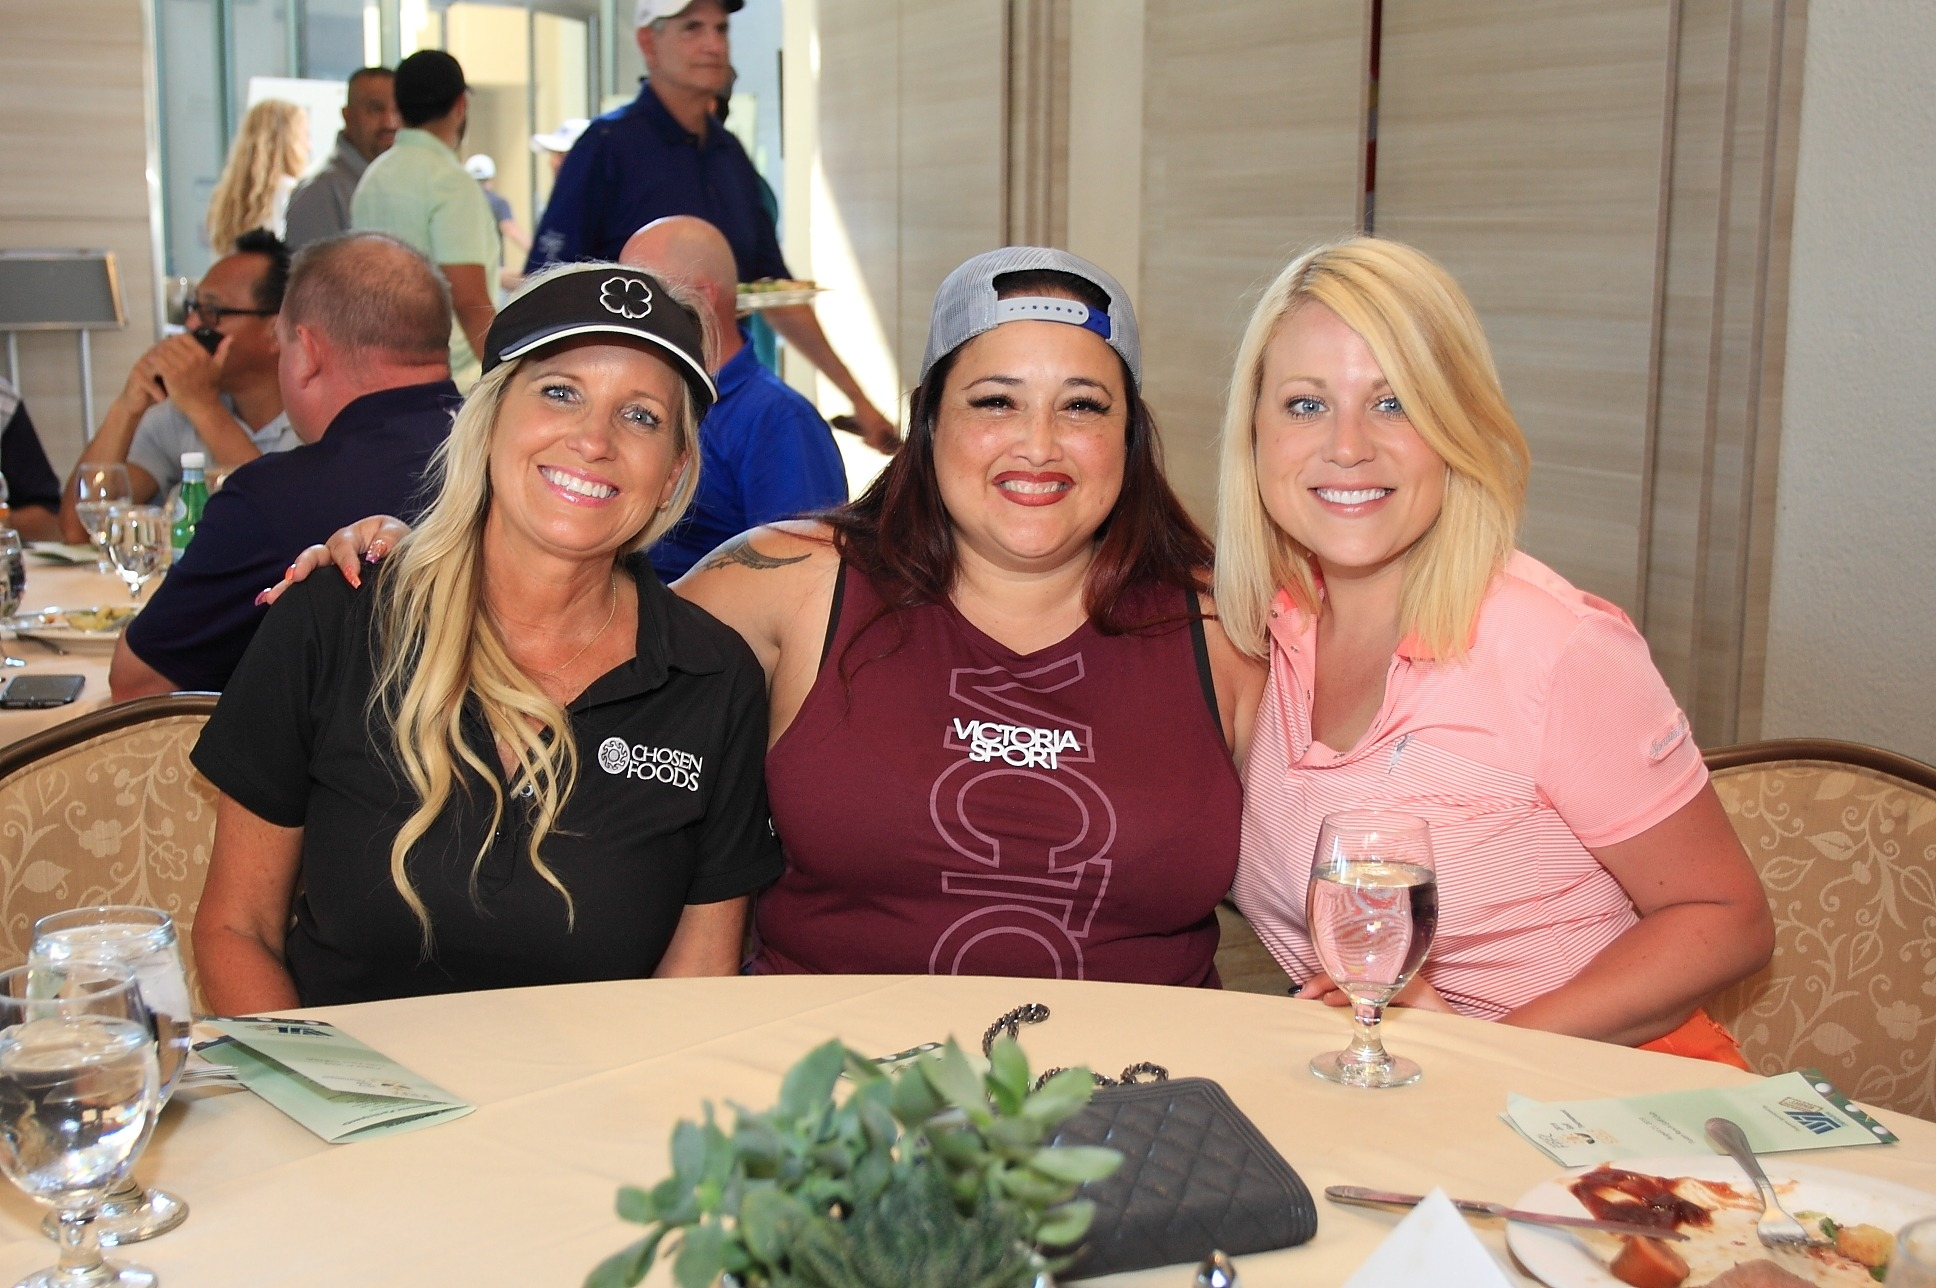 Kristyn Lawson with Chosen Foods, Patricia Jimenez of Fresh Concepts, and Caitlin Tierney of 99 Cents Only Stores at the awards dinner.